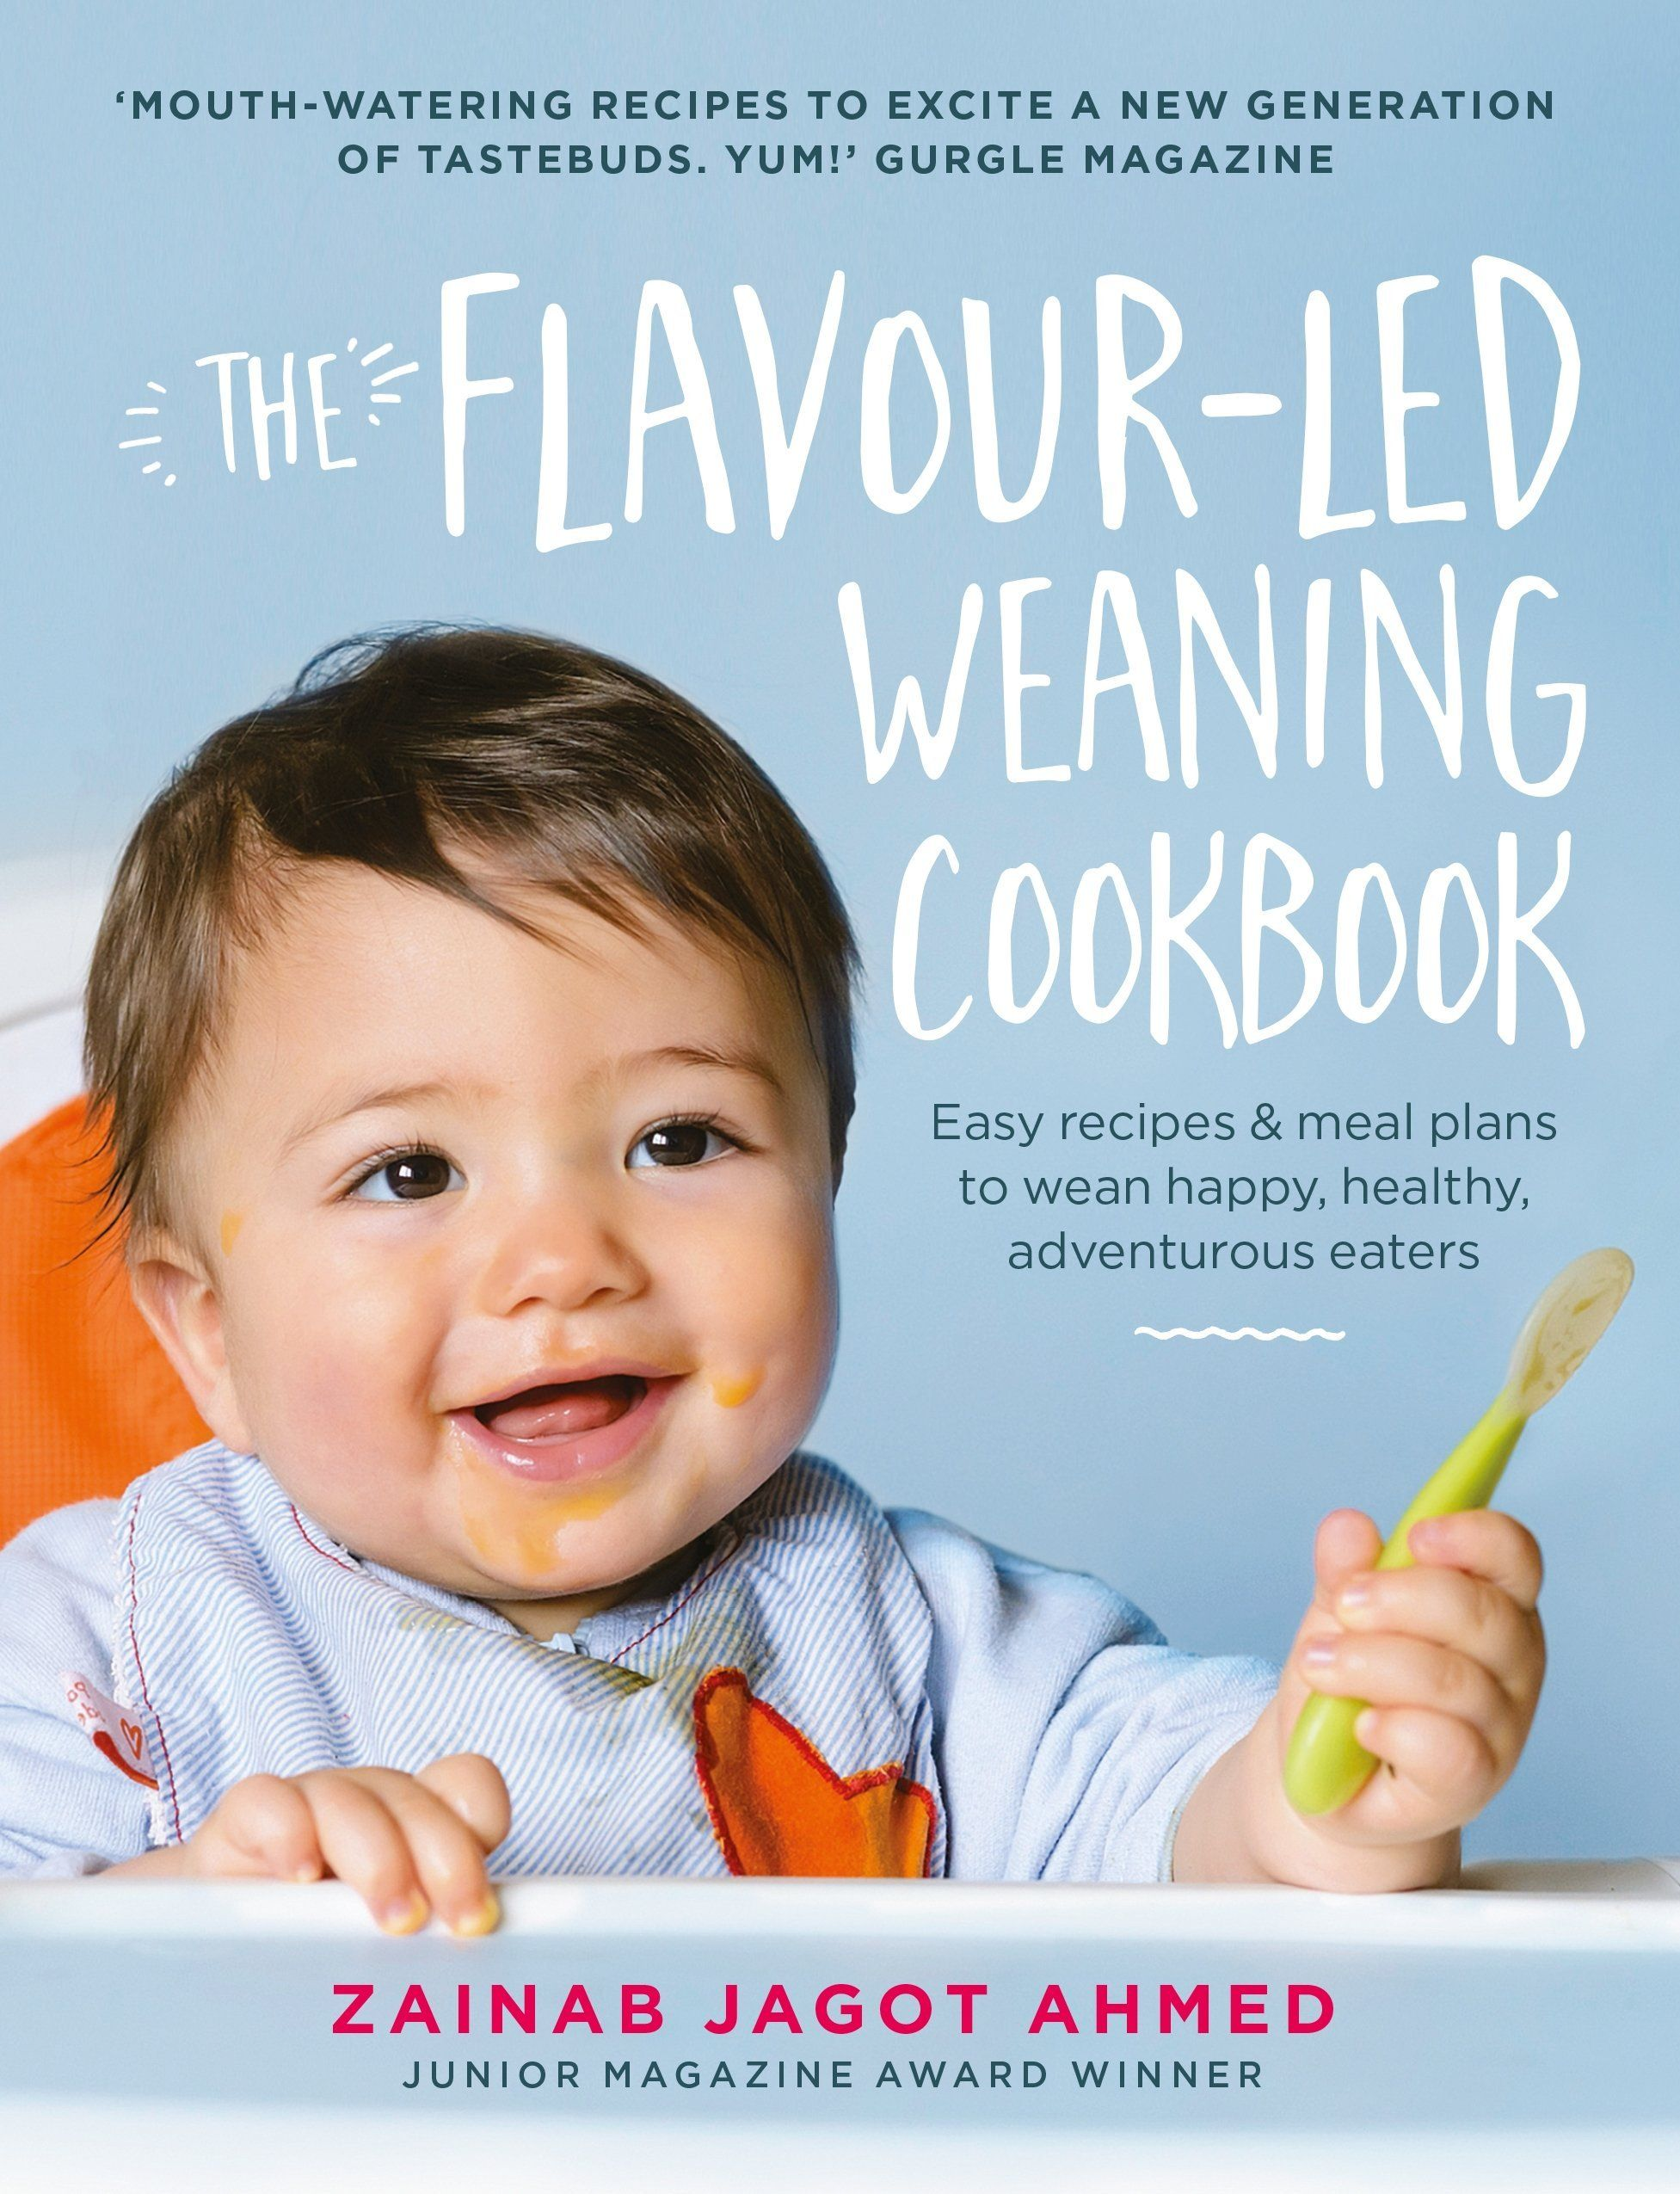 The Flavour-led Weaning Cookbook by Zainab Jagot Ahmed & Baby Spice Kitchen Collection - Spice Kitchen - Spices, Spice Blends, Gifts & Cookware